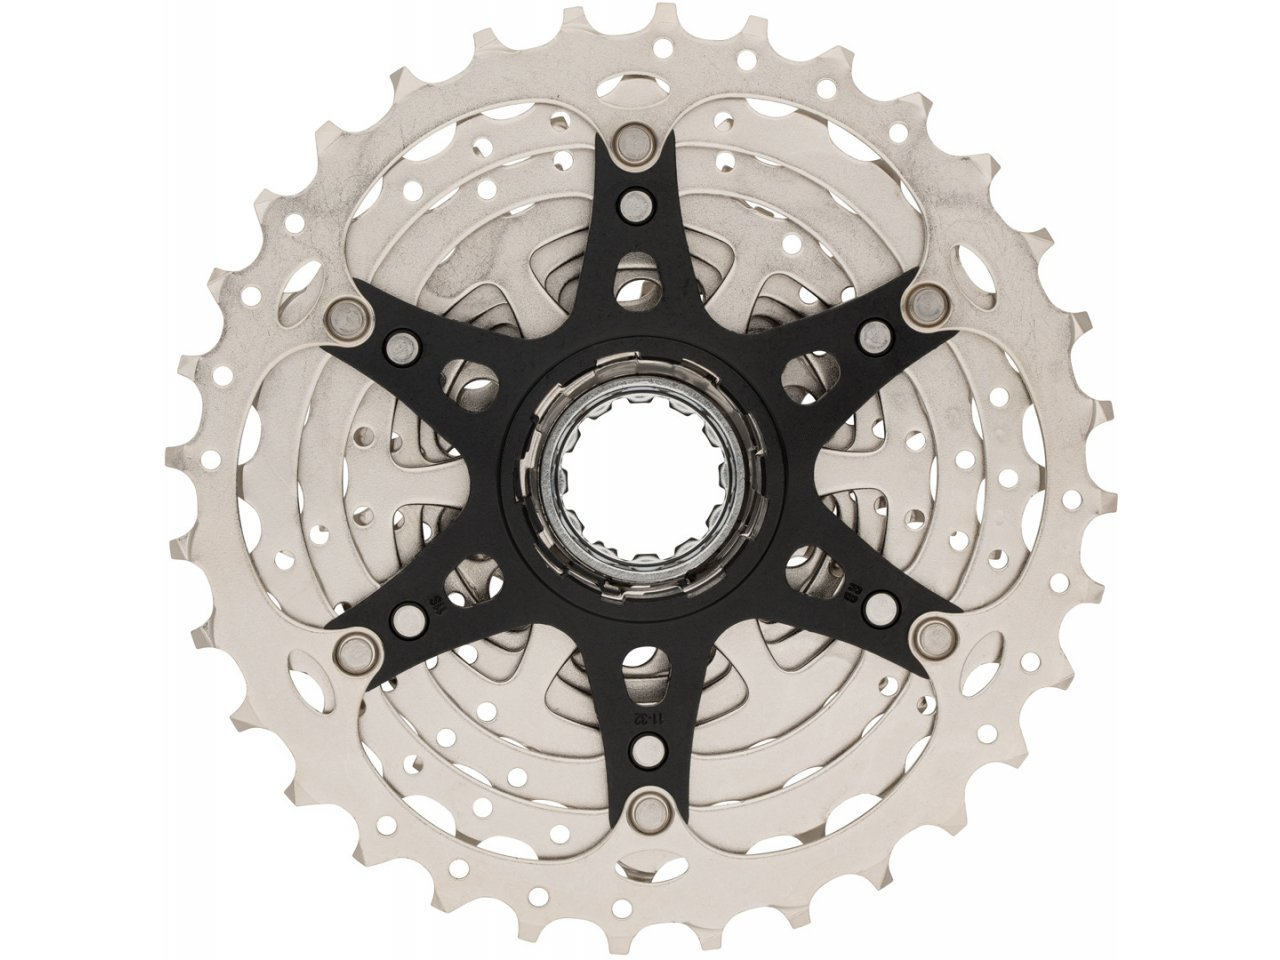 Shimano 105 105 11-speed cassette